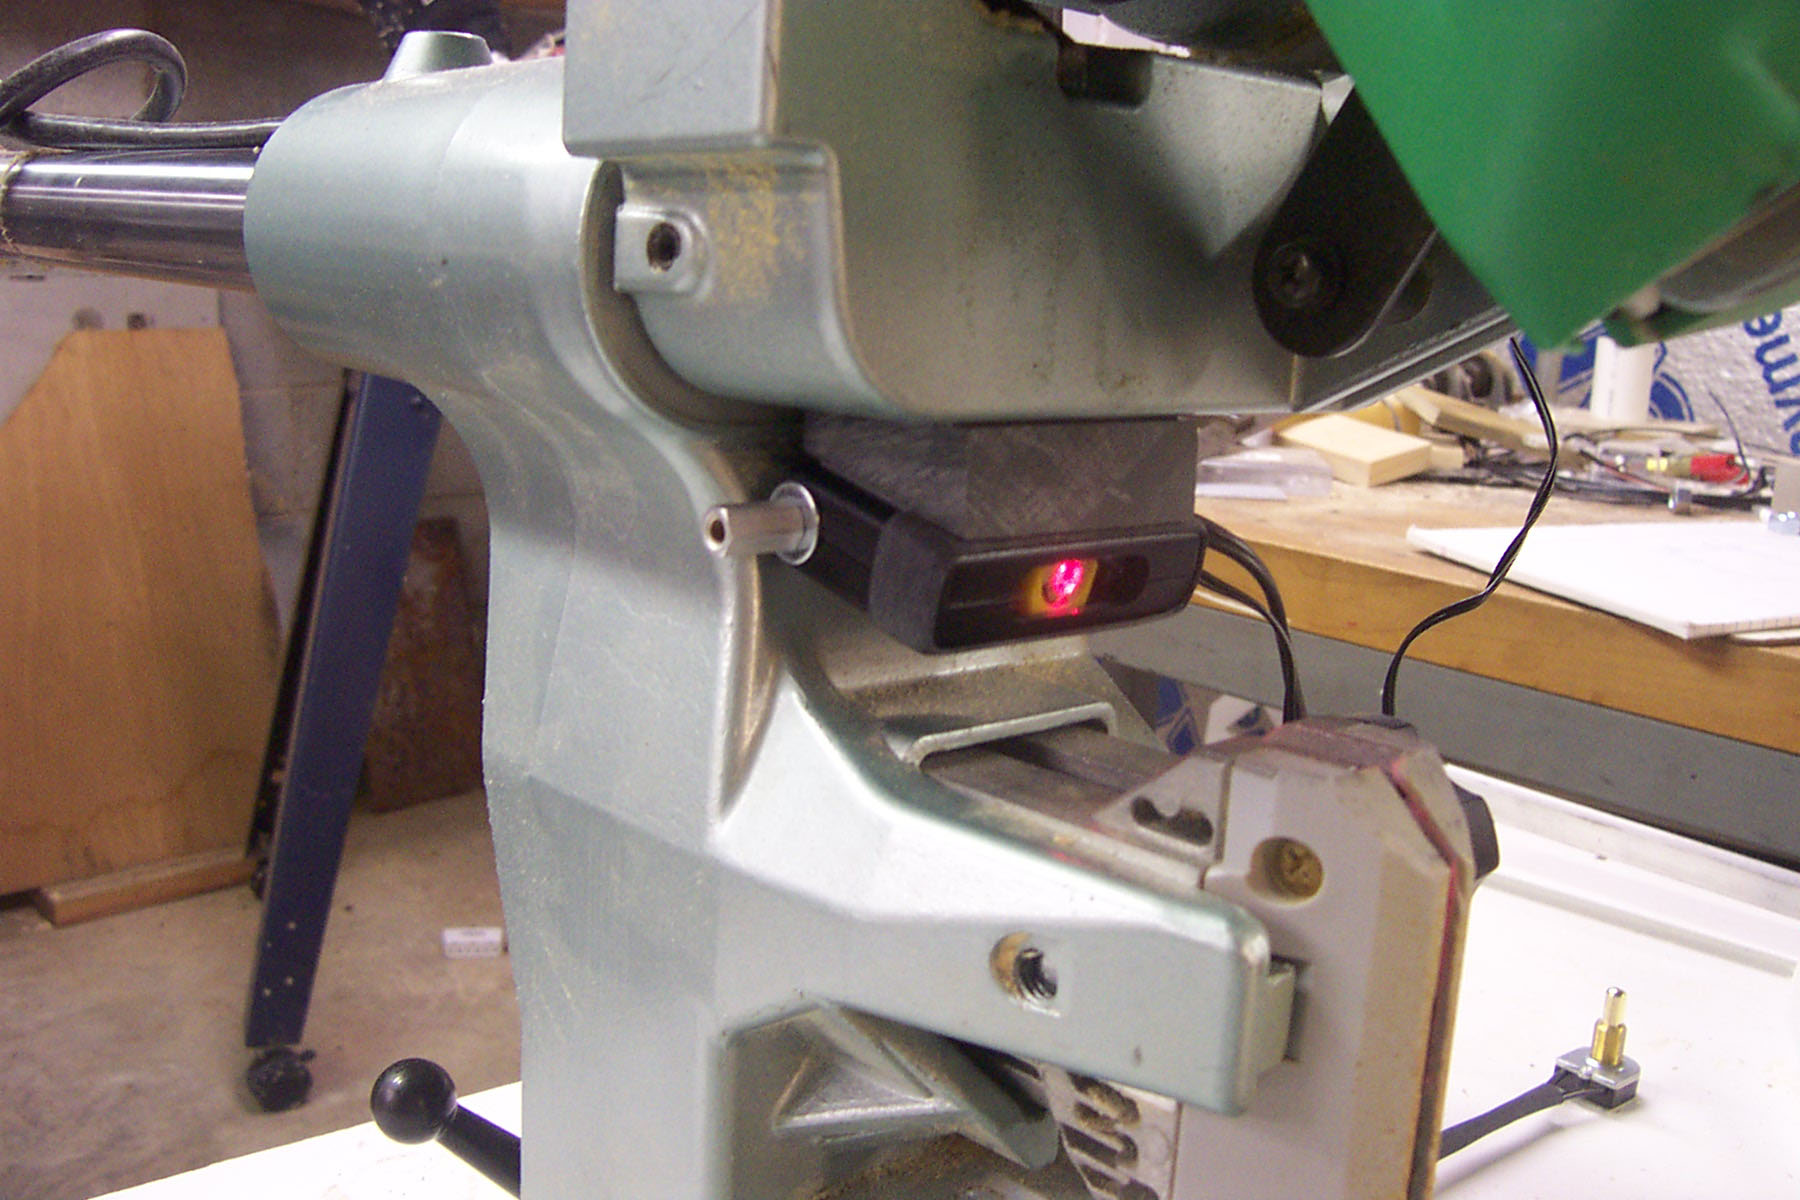 8. The following pictures are to assist you in positioning the laser in direct line with the blade per the installation instructions.